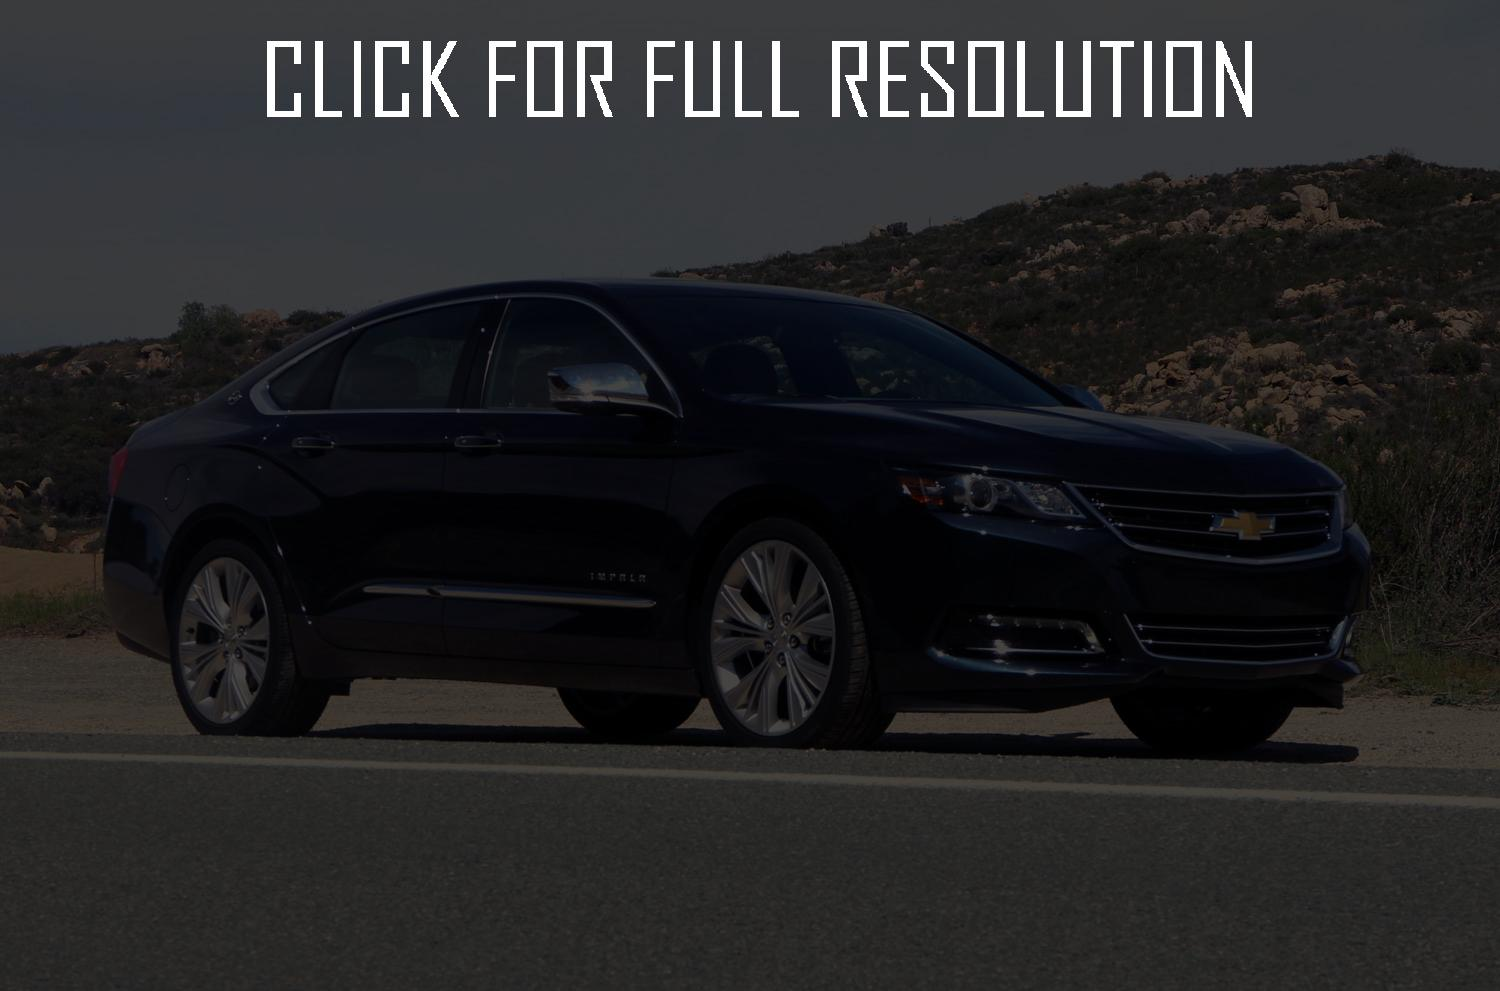 chevrolet impala 2013 wallpaper